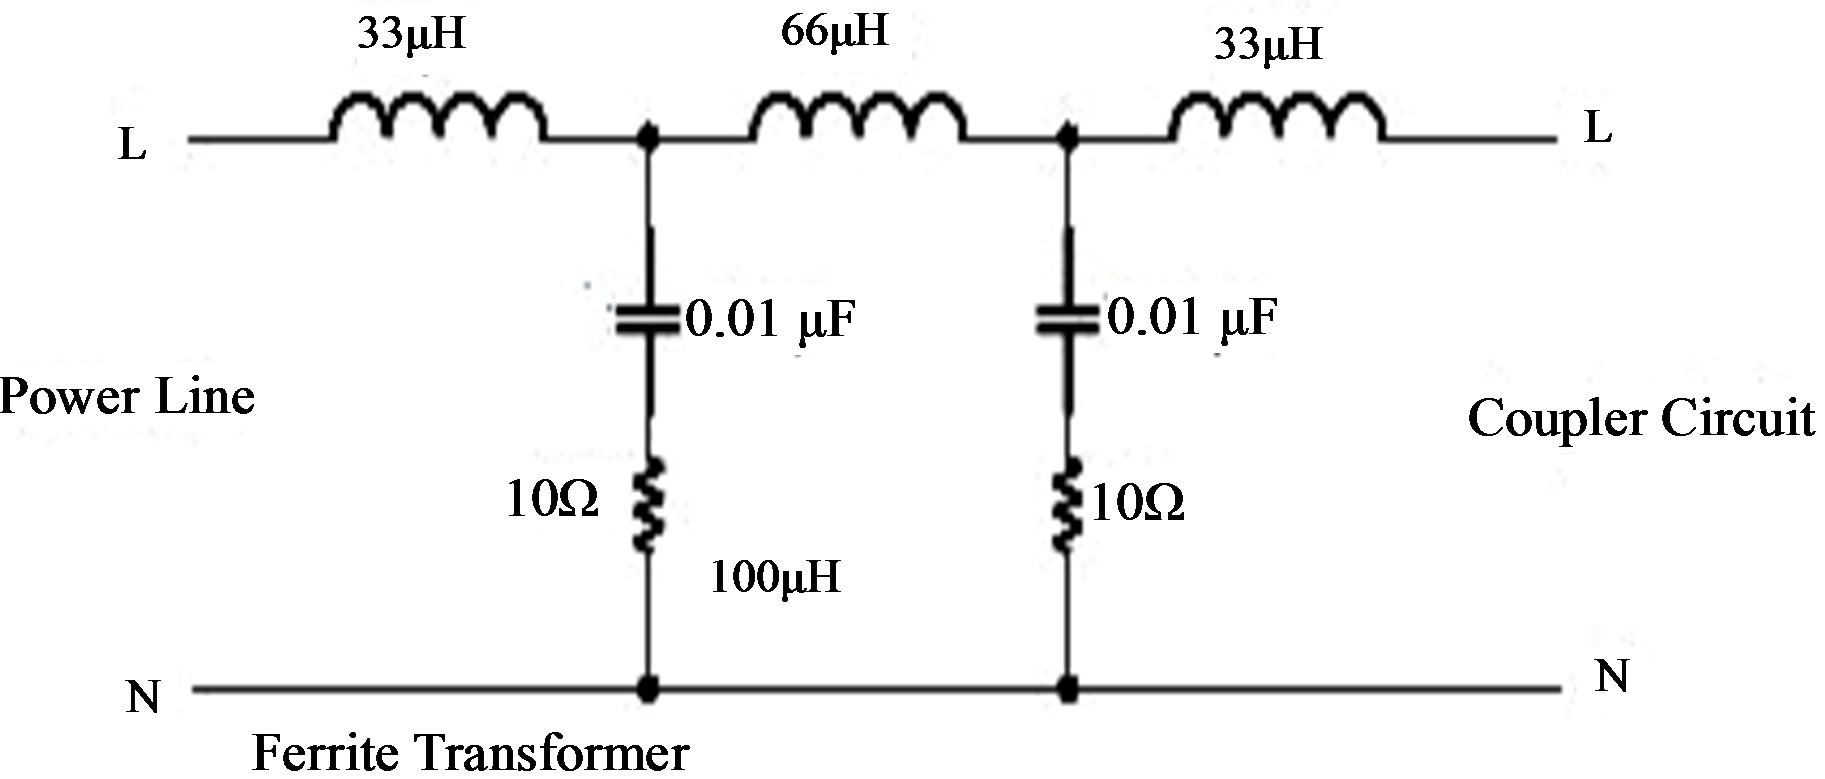 Design Of Bidirectional Coupling Circuit For Broadband